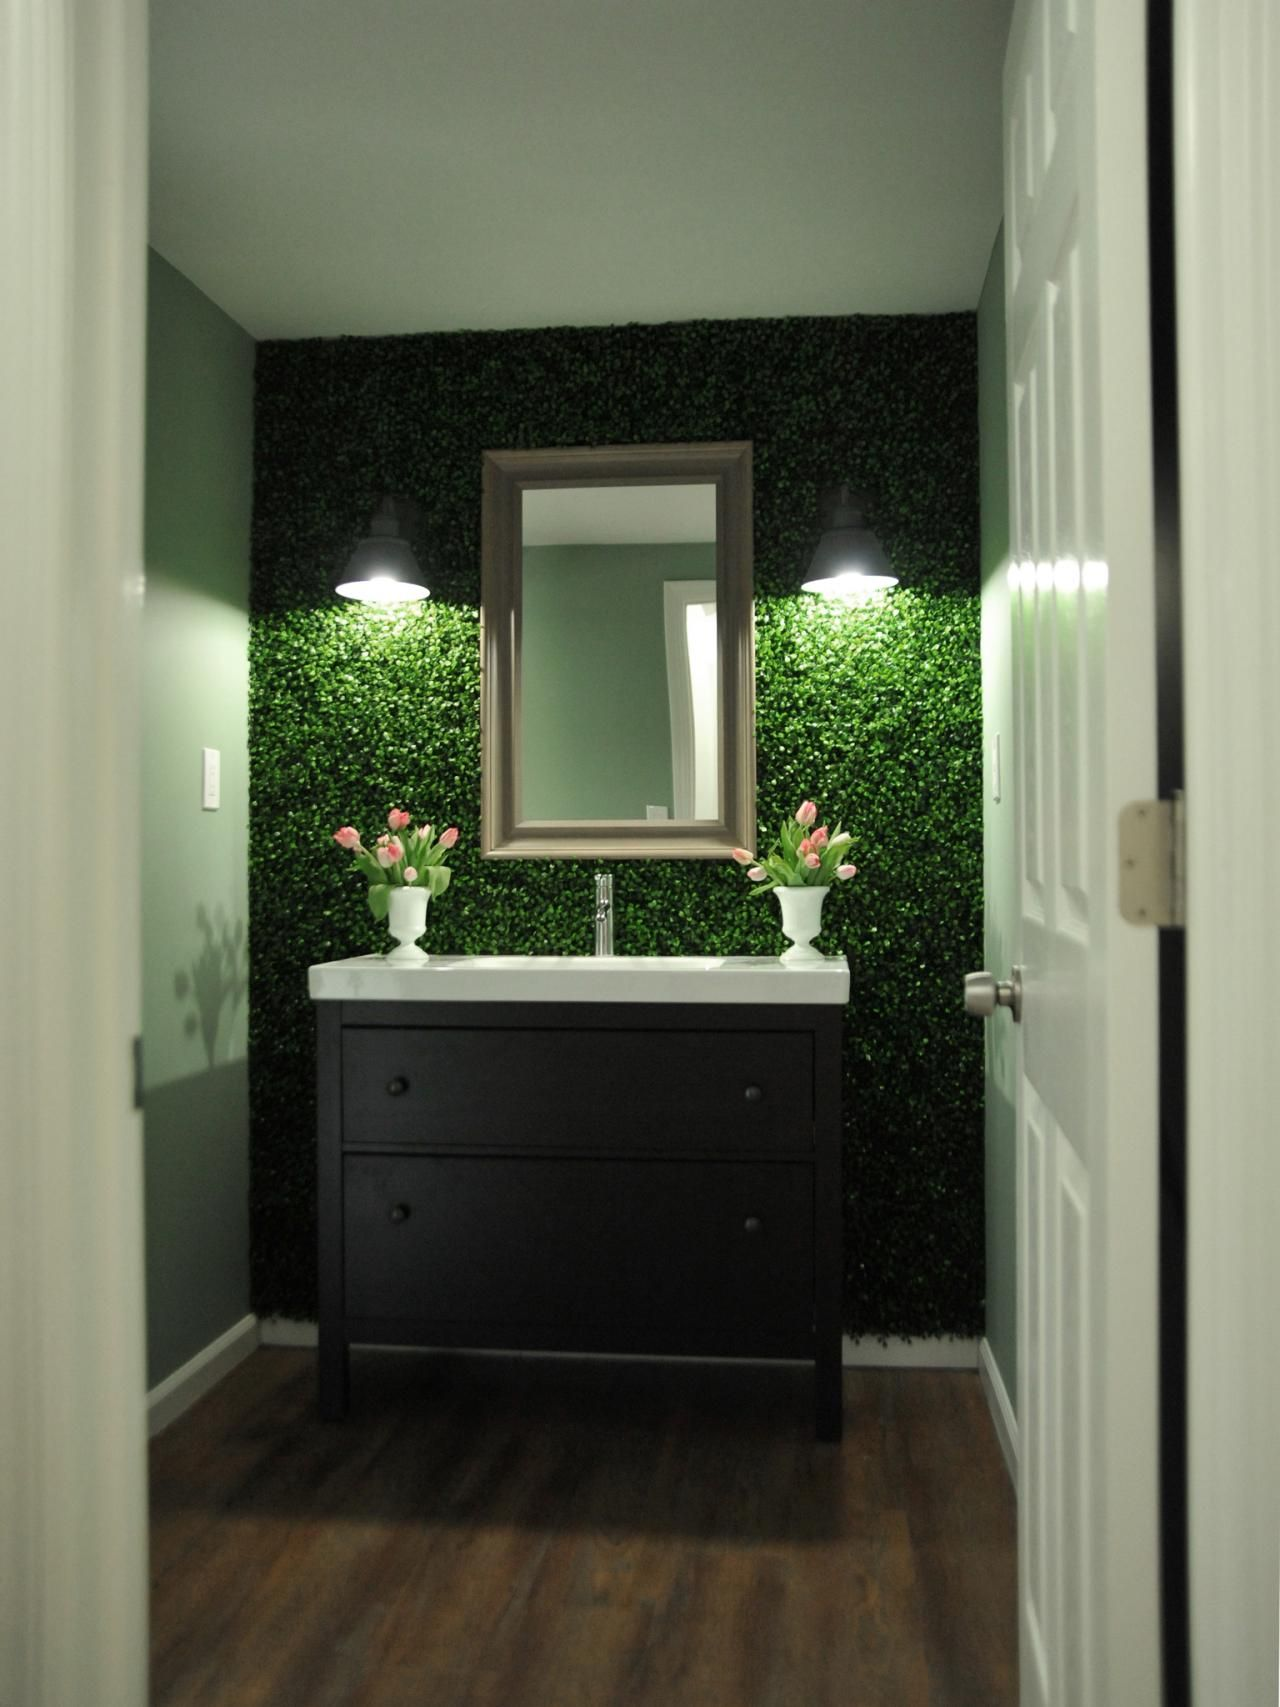 Panels of faux boxwood leaves offer an earthy feel to the for Bathroom decor green walls